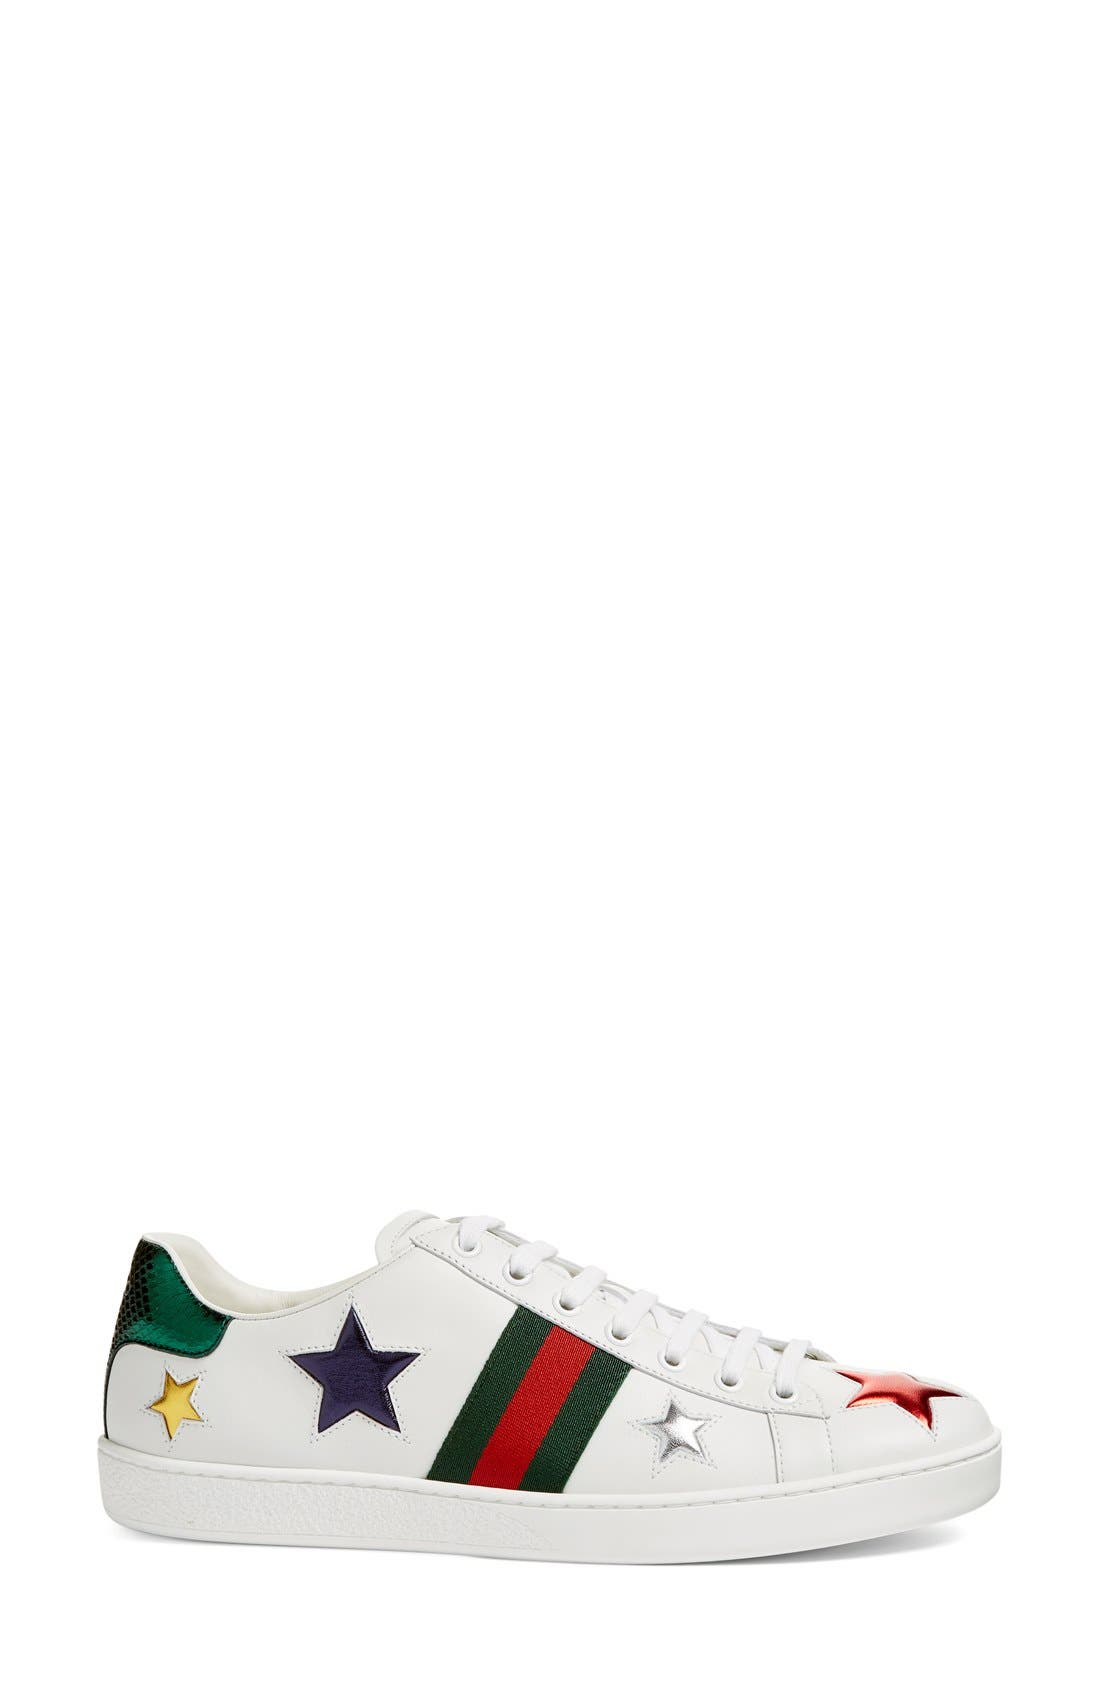 GUCCI, New Ace Star Sneaker, Alternate thumbnail 6, color, WHITE MULTI